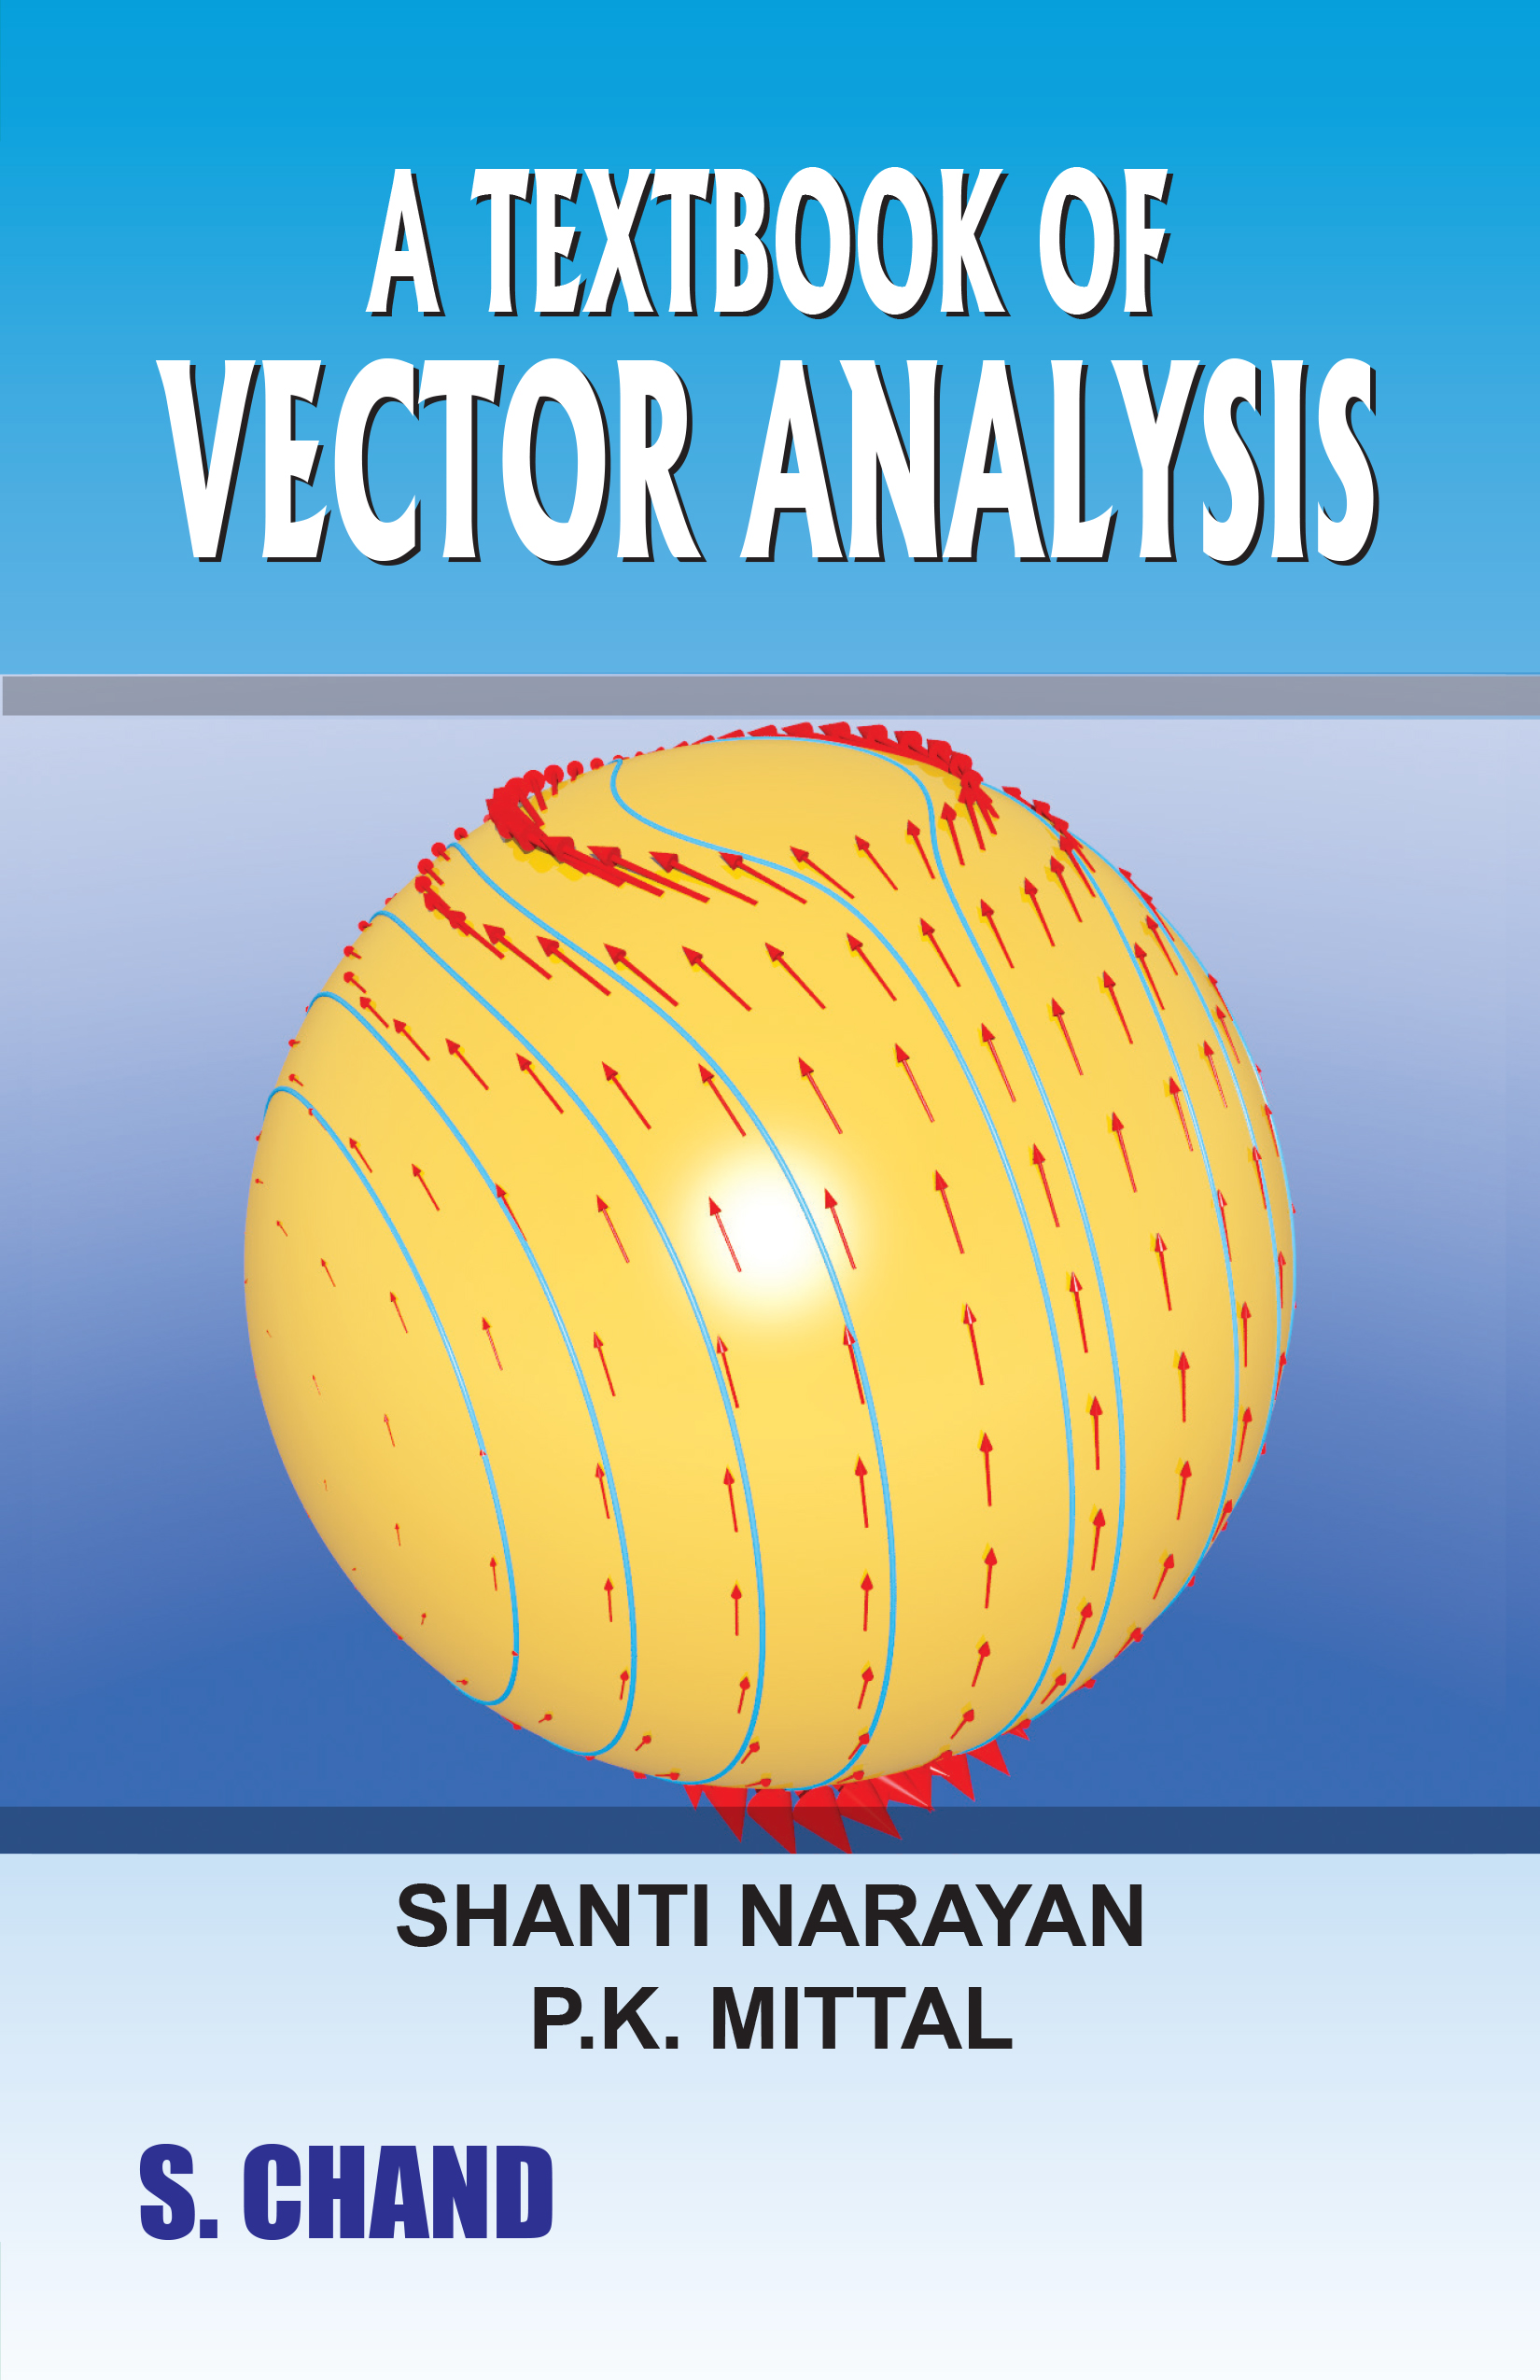 A Textbook of Vector Analysis